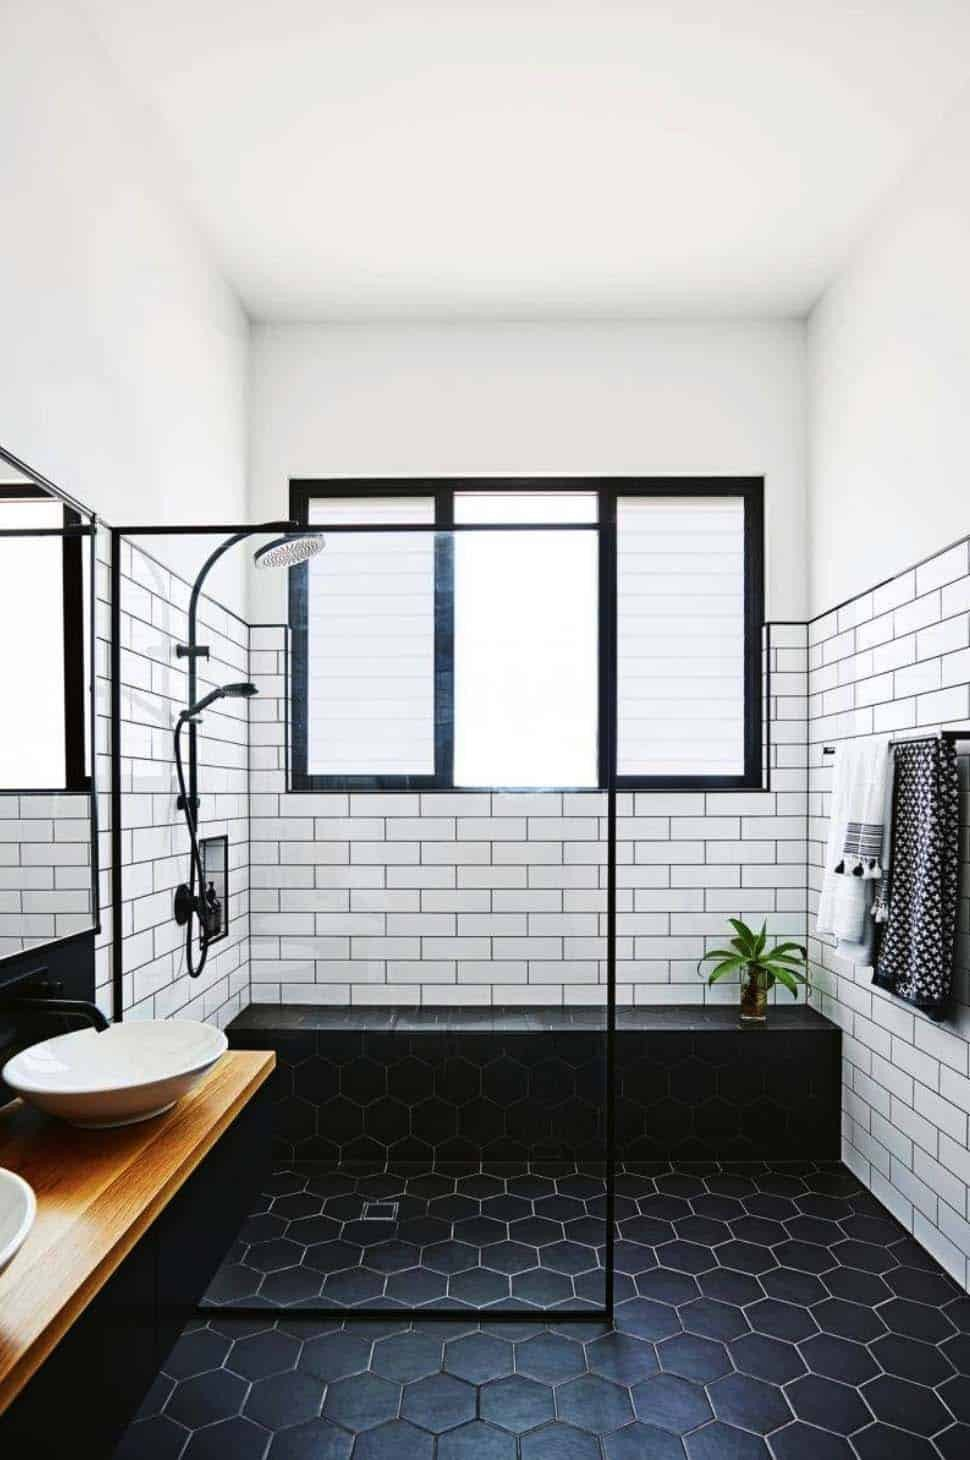 Black and White Bathroom Decor Lovely 25 Incredibly Stylish Black and White Bathroom Ideas to Inspire